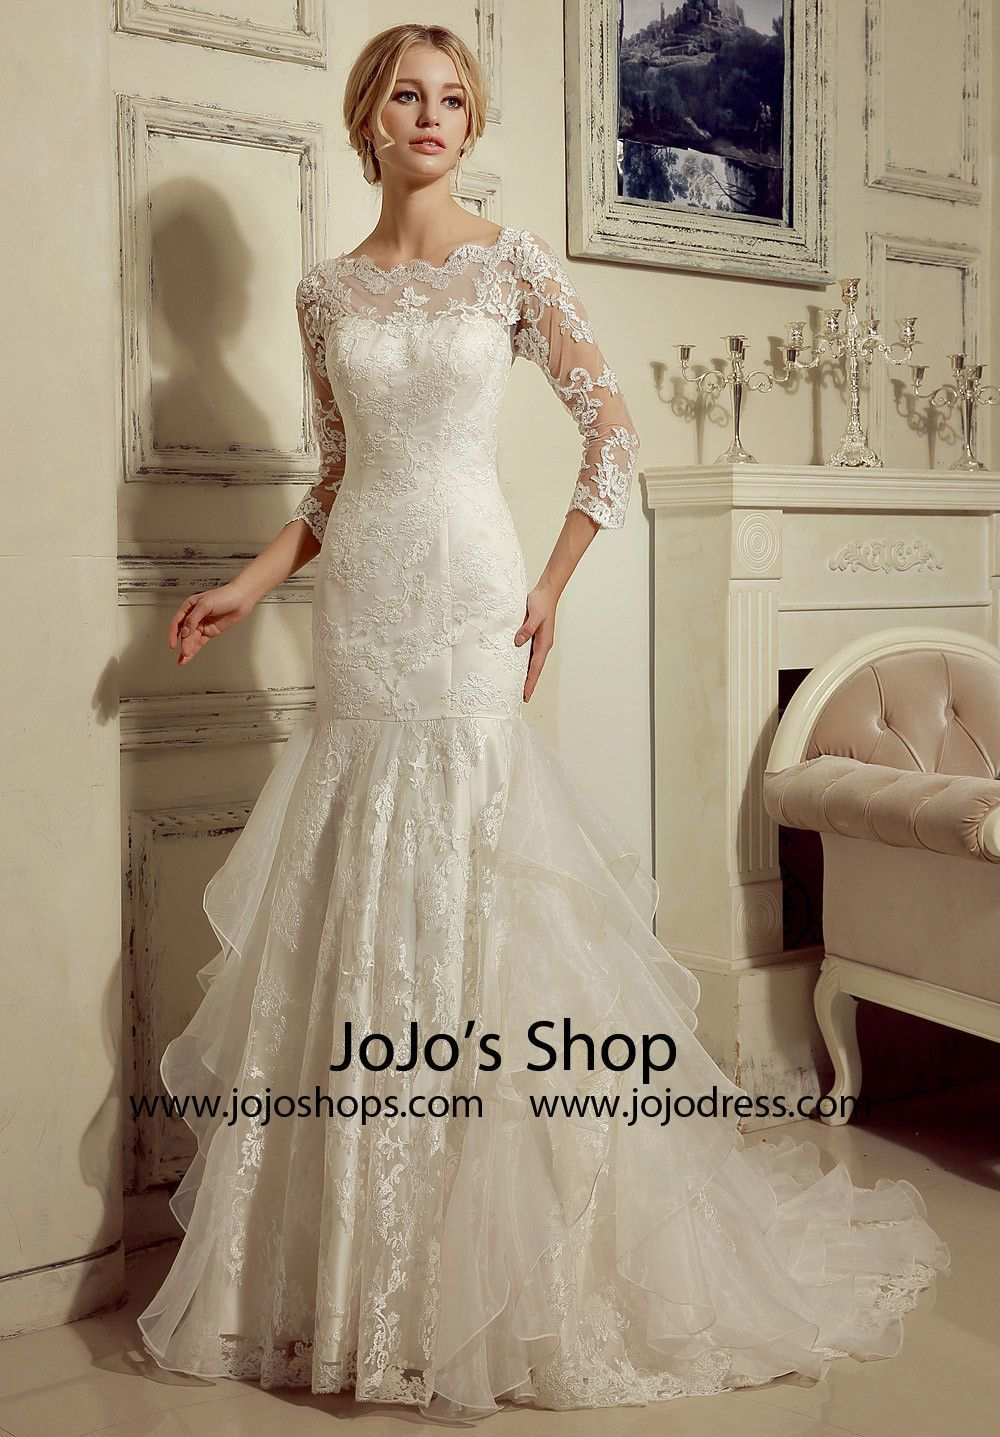 Long sleeves lace fit and flare wedding dress in wedding